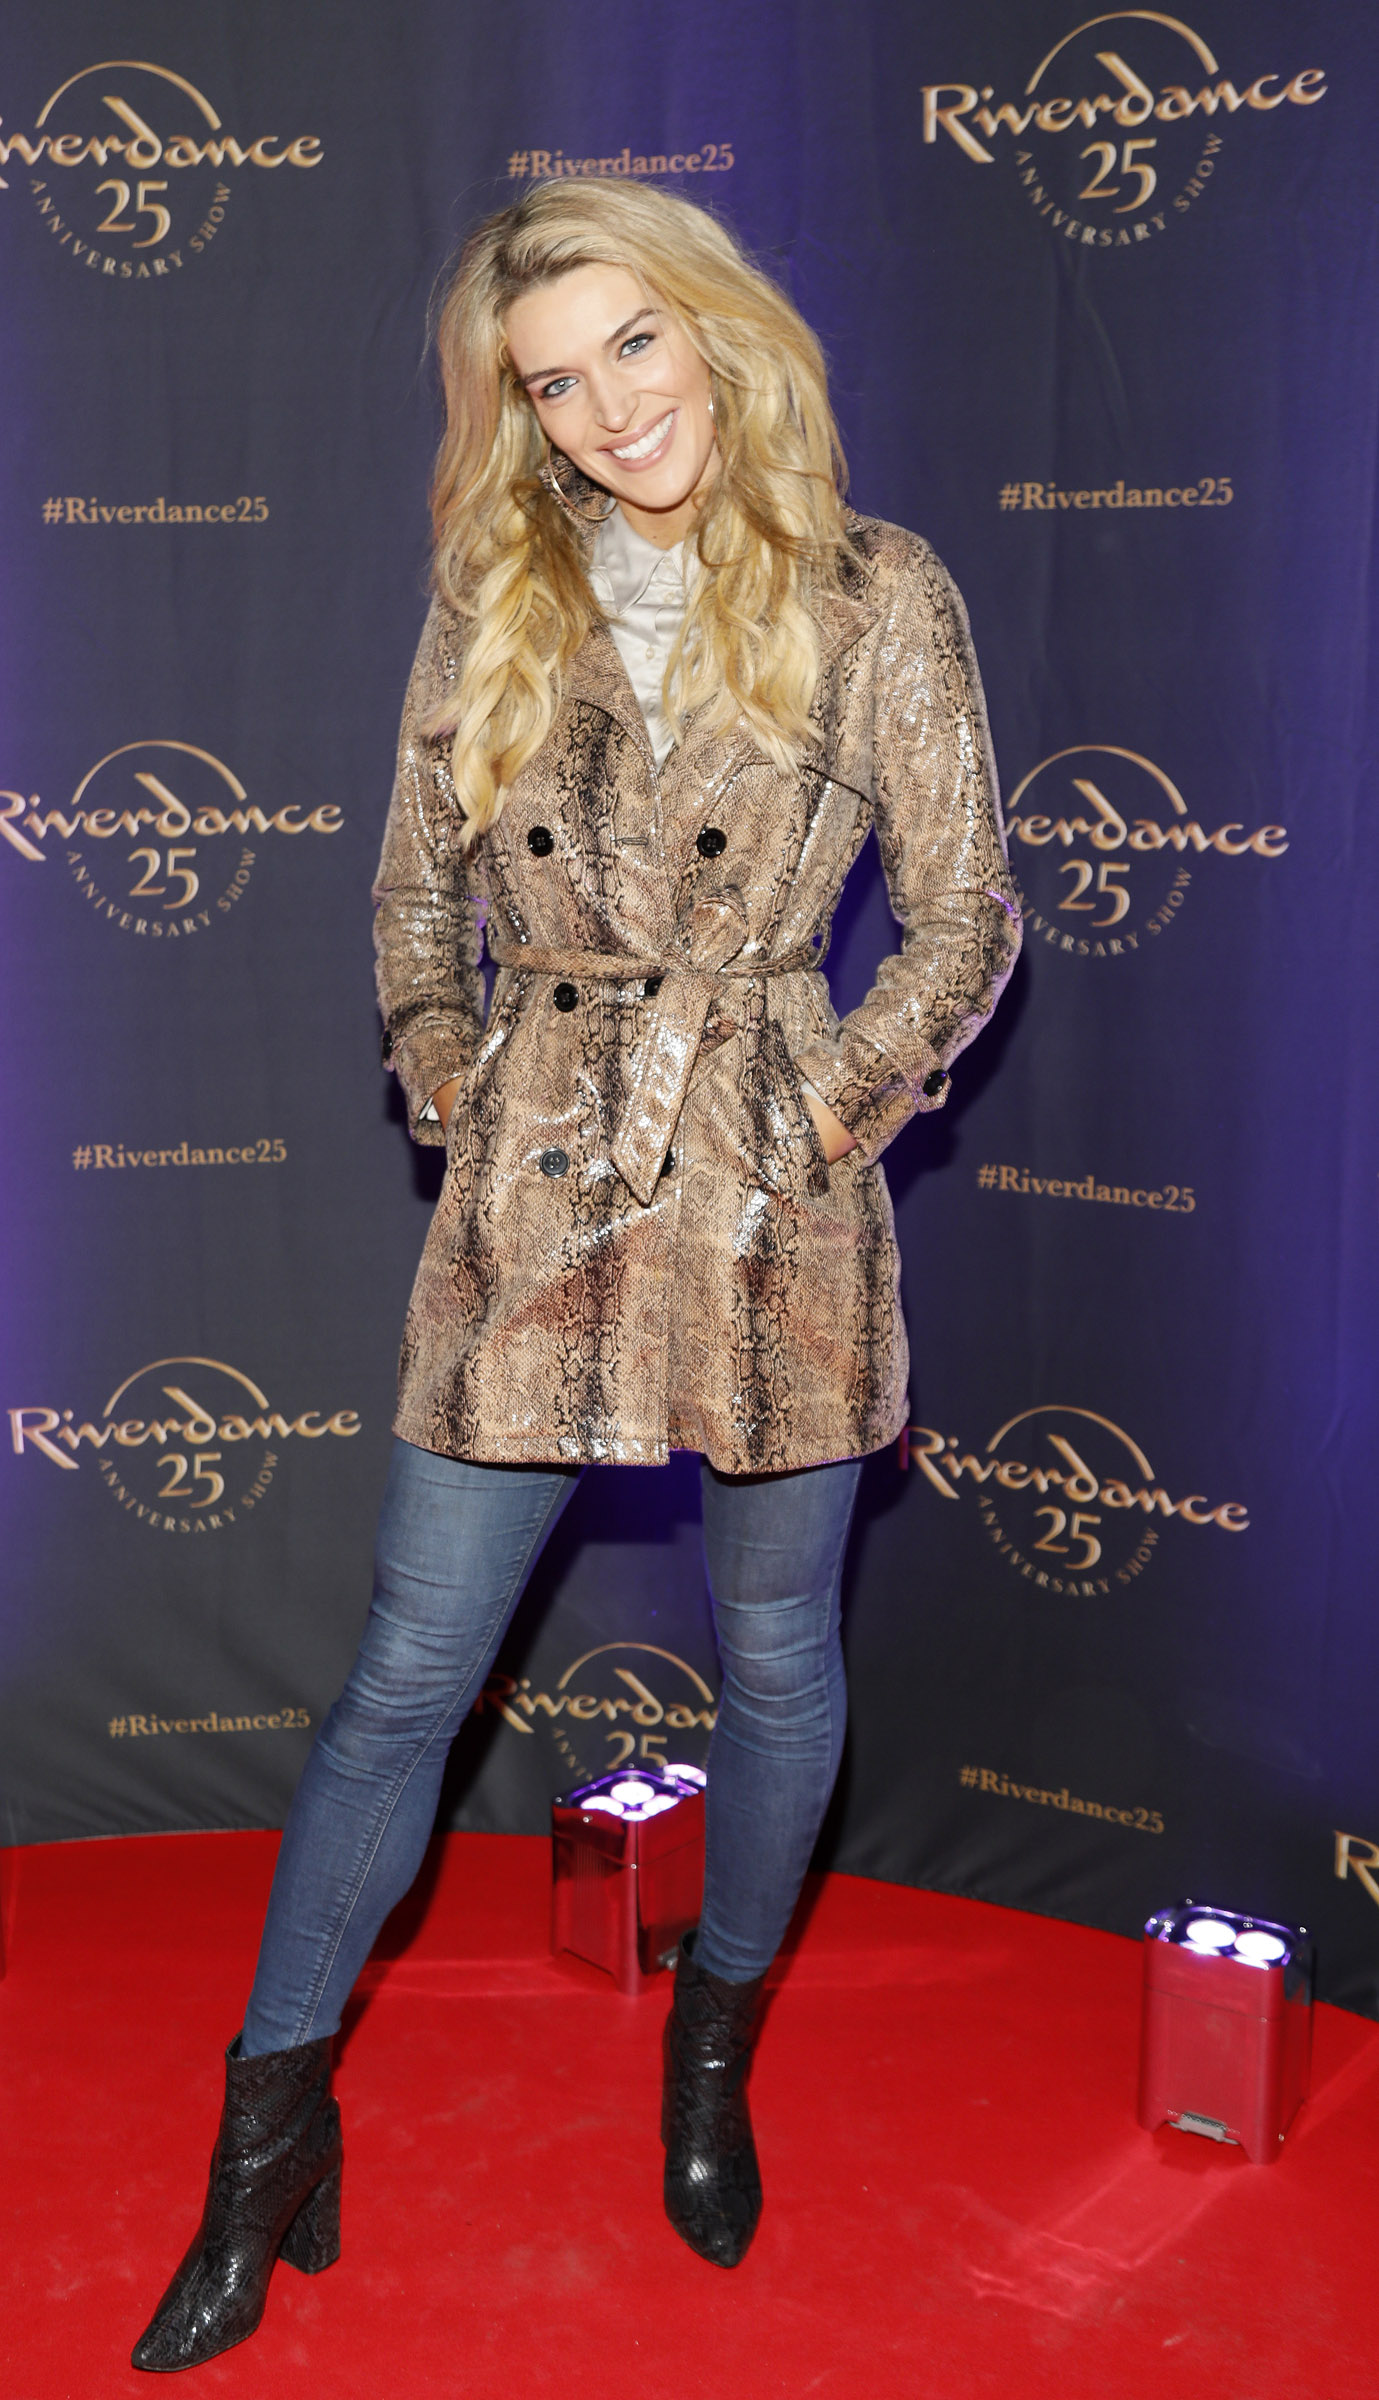 Grainne Gallanagh at the historic gala performance of Riverdance 25th Anniversary show at 3Arena Dublin exactly 25 years to the day that Riverdance was first performed at the Point Depot.  Photo: Kieran Harnett